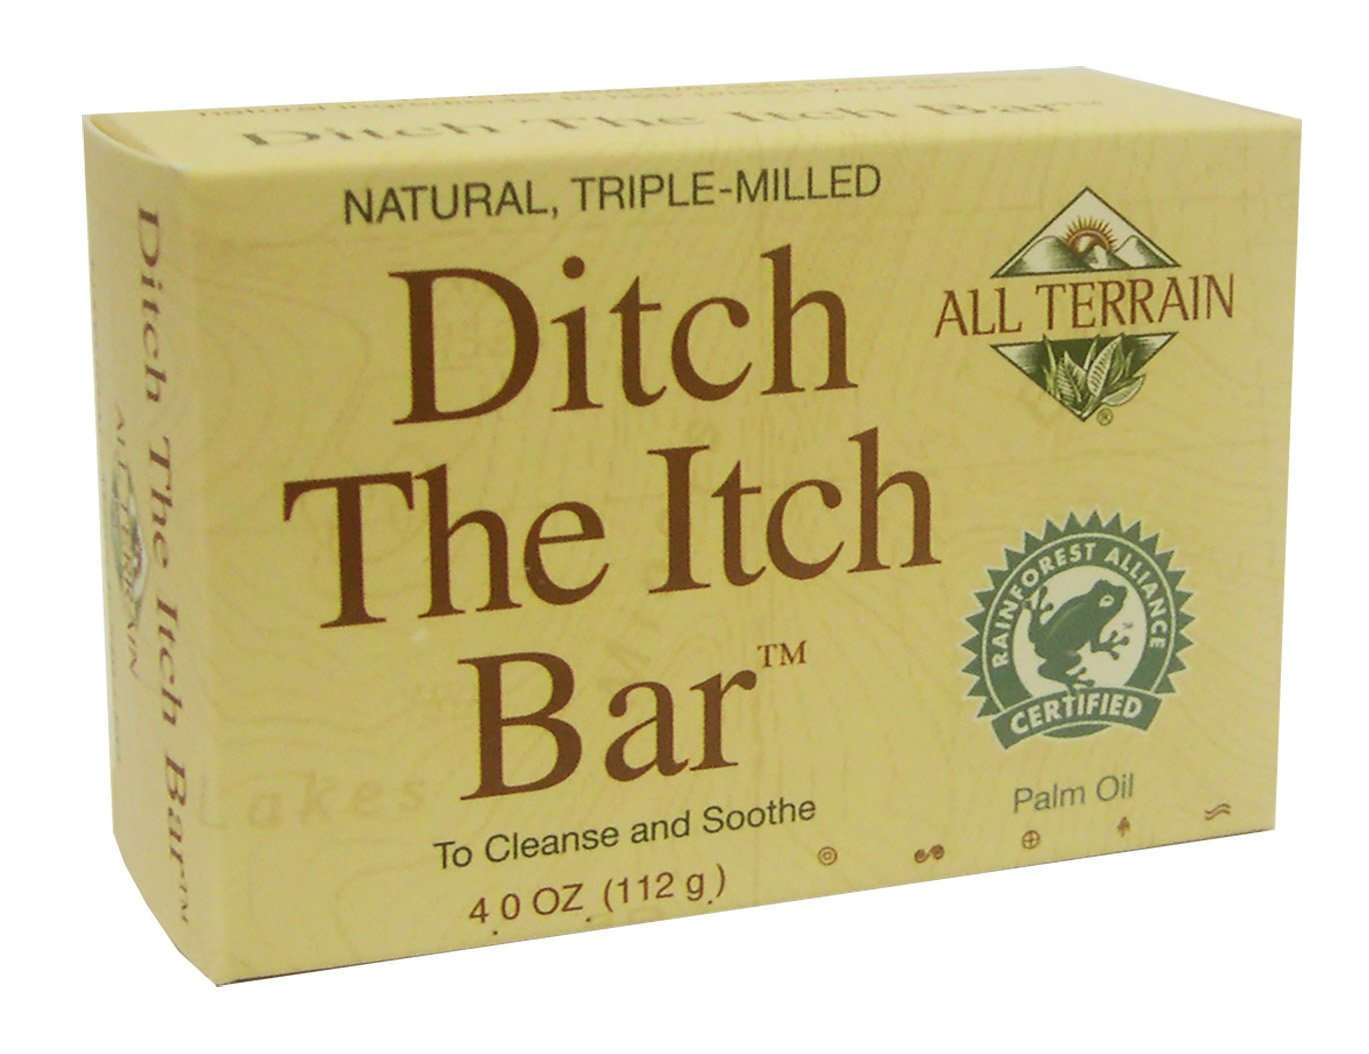 All Terrain Natural Ditch the Itch Bar 4oz, Helps